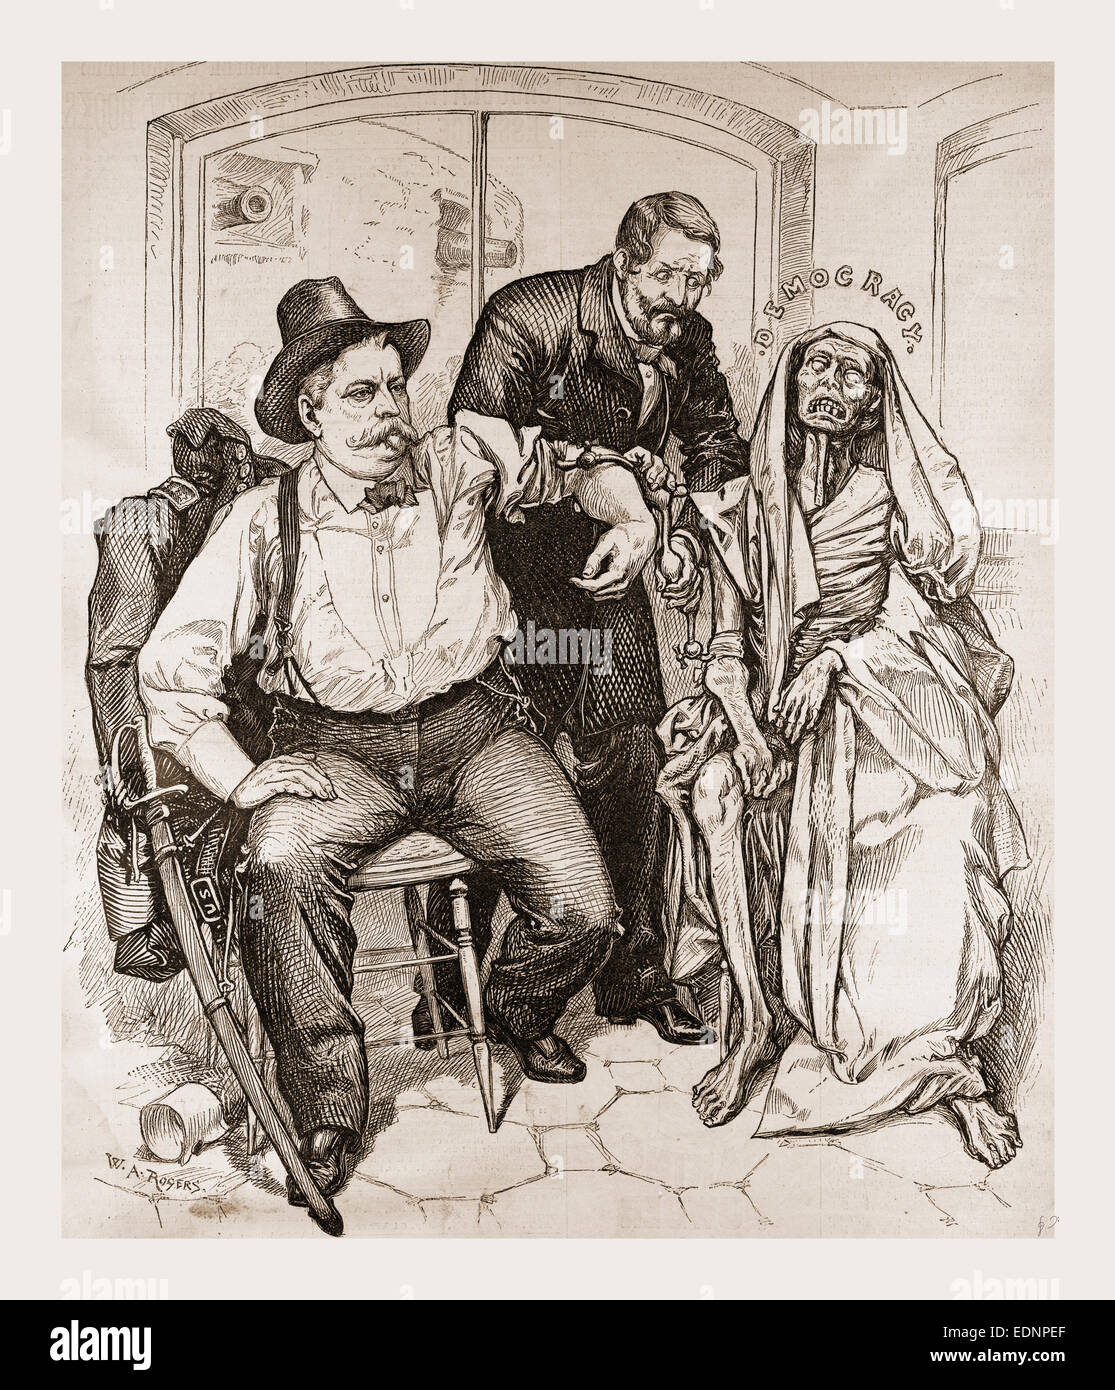 TRANSFUSION OF BLOOD—IS IT TOO LATE ?., 1880, 19th century engraving, USA, America - Stock Image